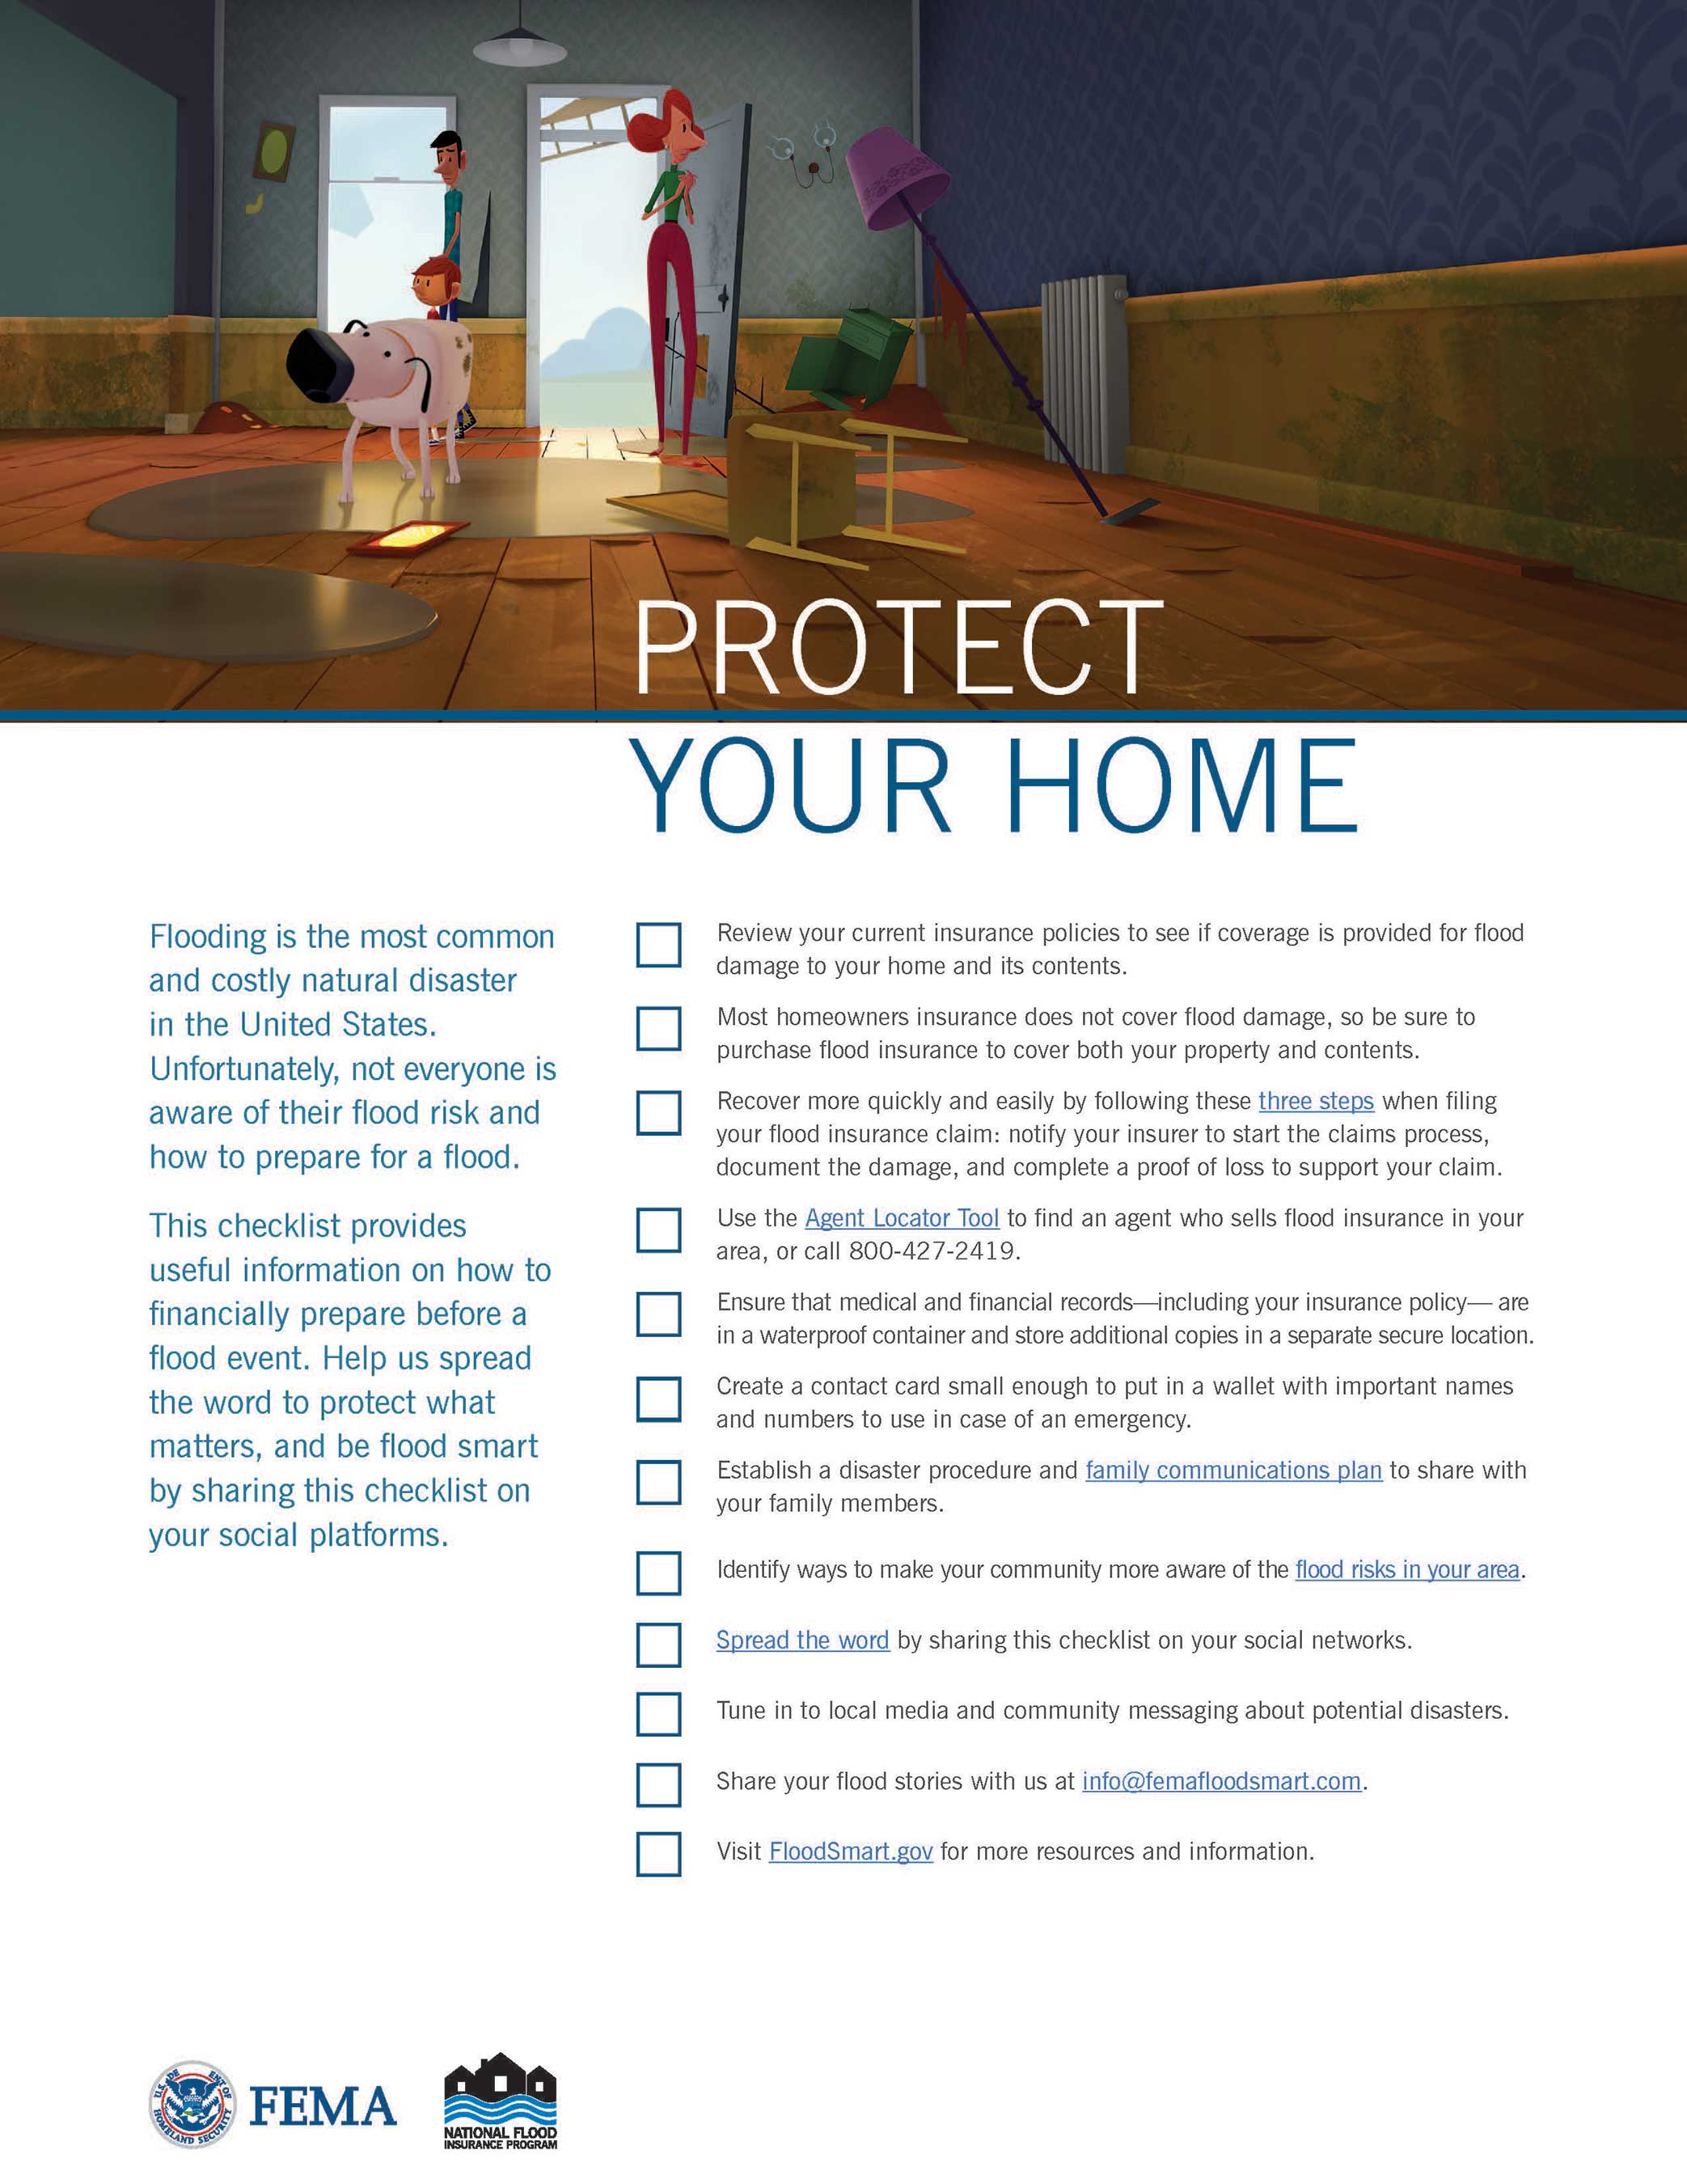 Protect Your Home Checklist